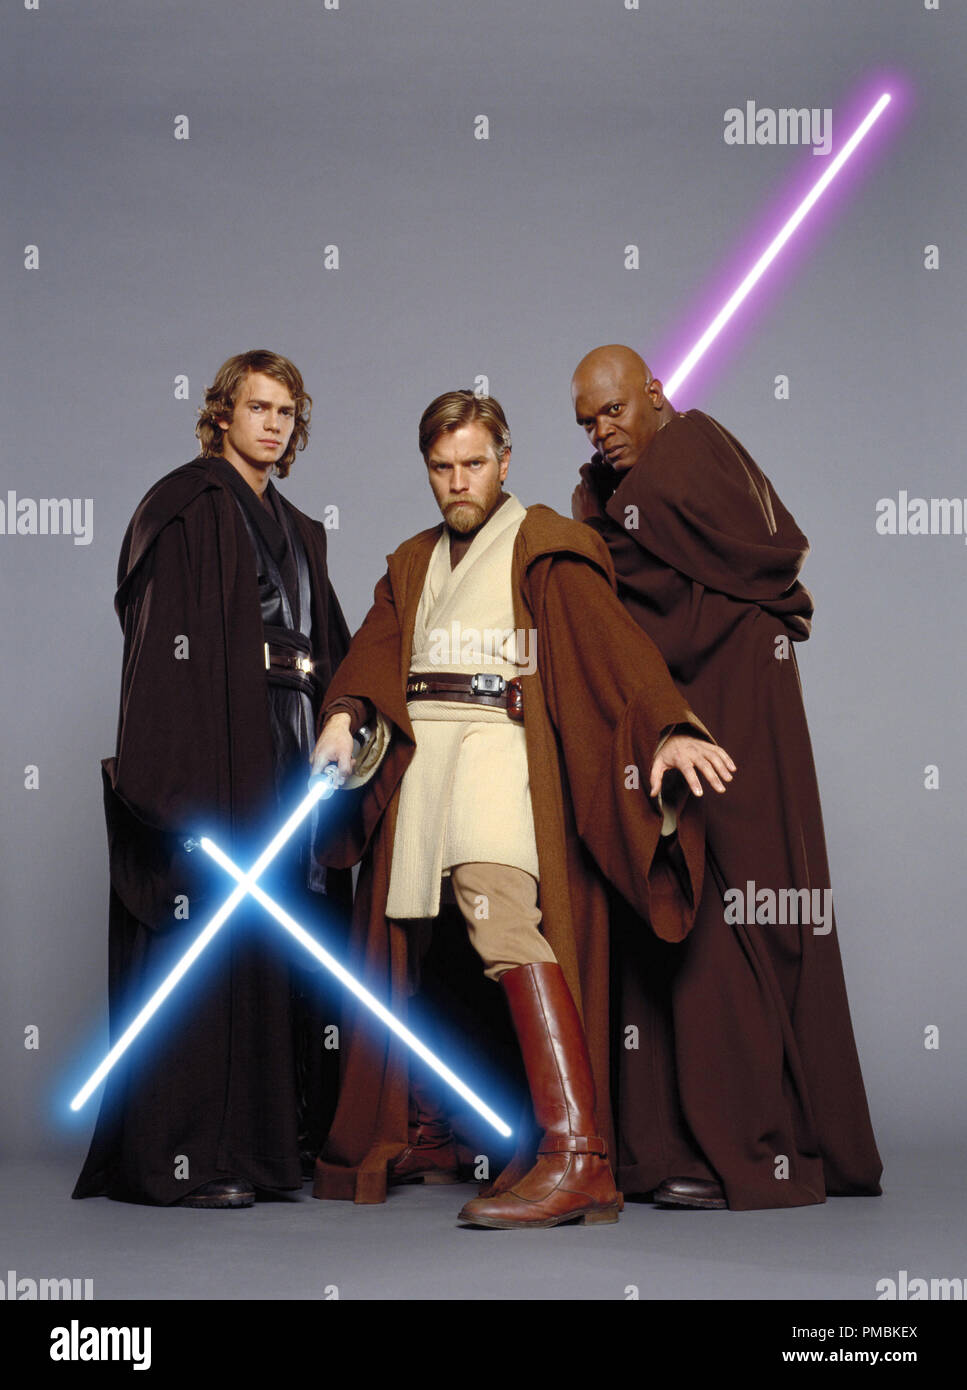 Mace Windu High Resolution Stock Photography And Images Alamy